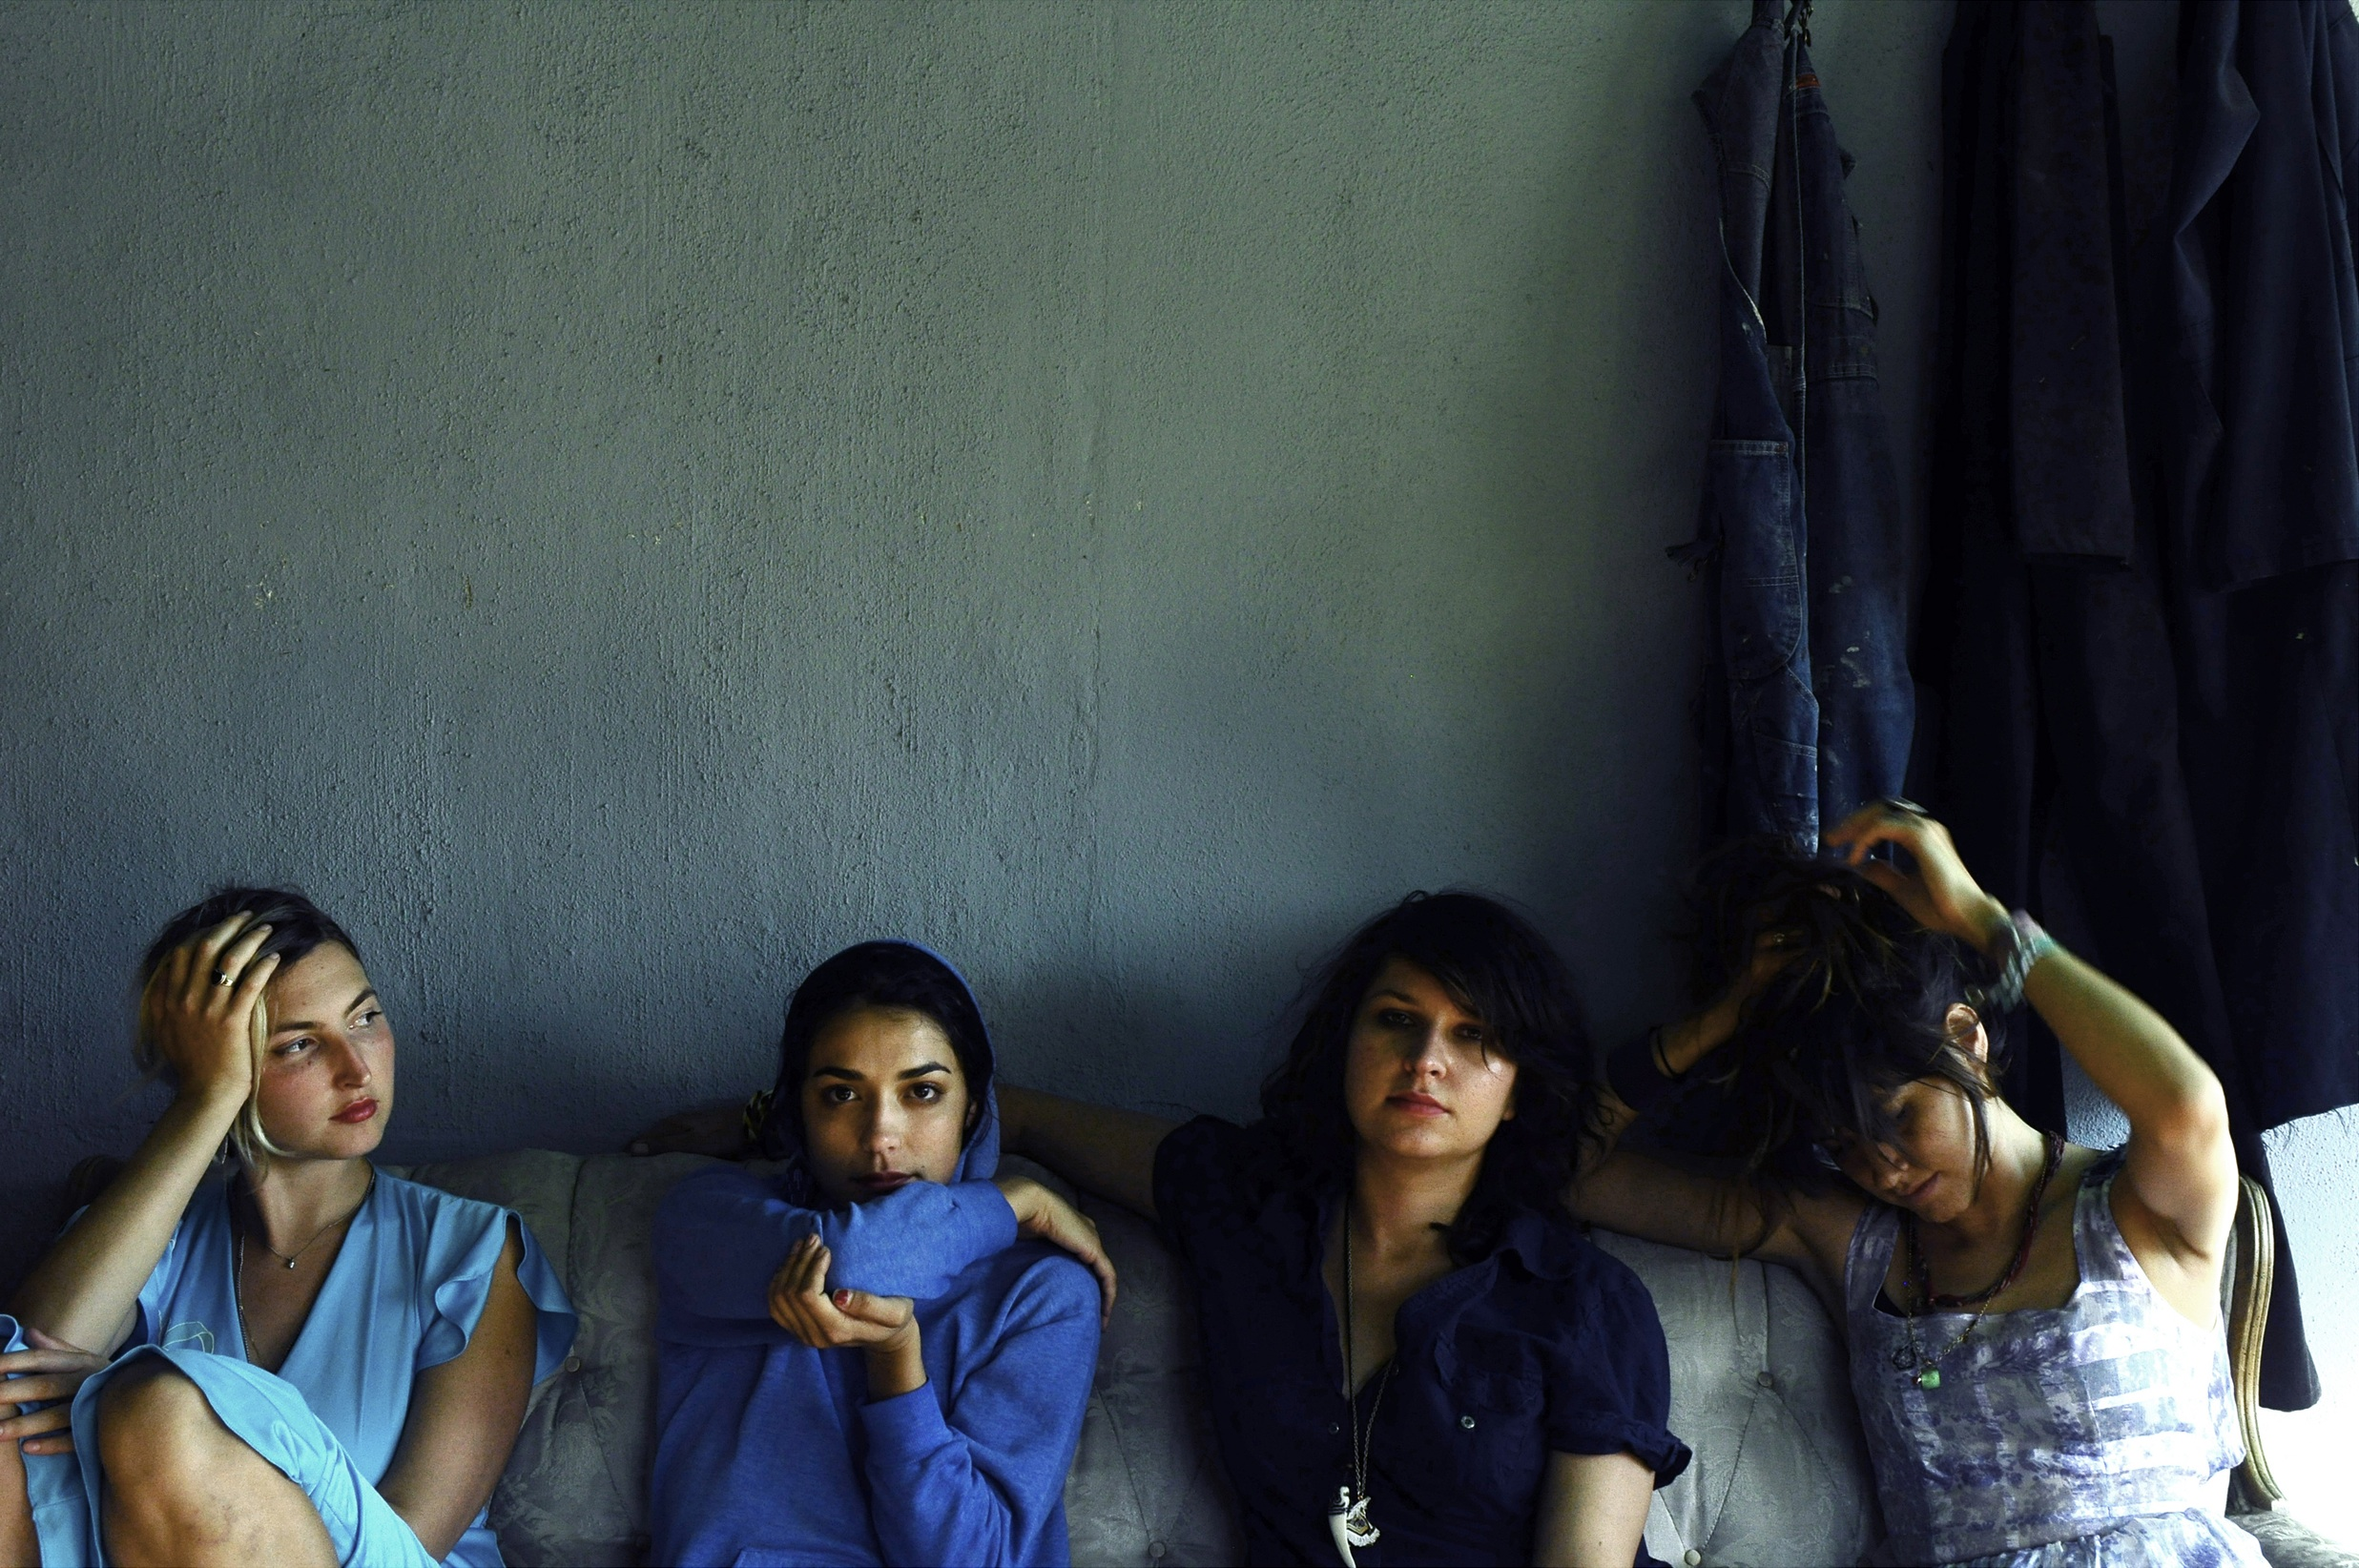 Warpaint: LA is Existential - Page - Interview Magazine